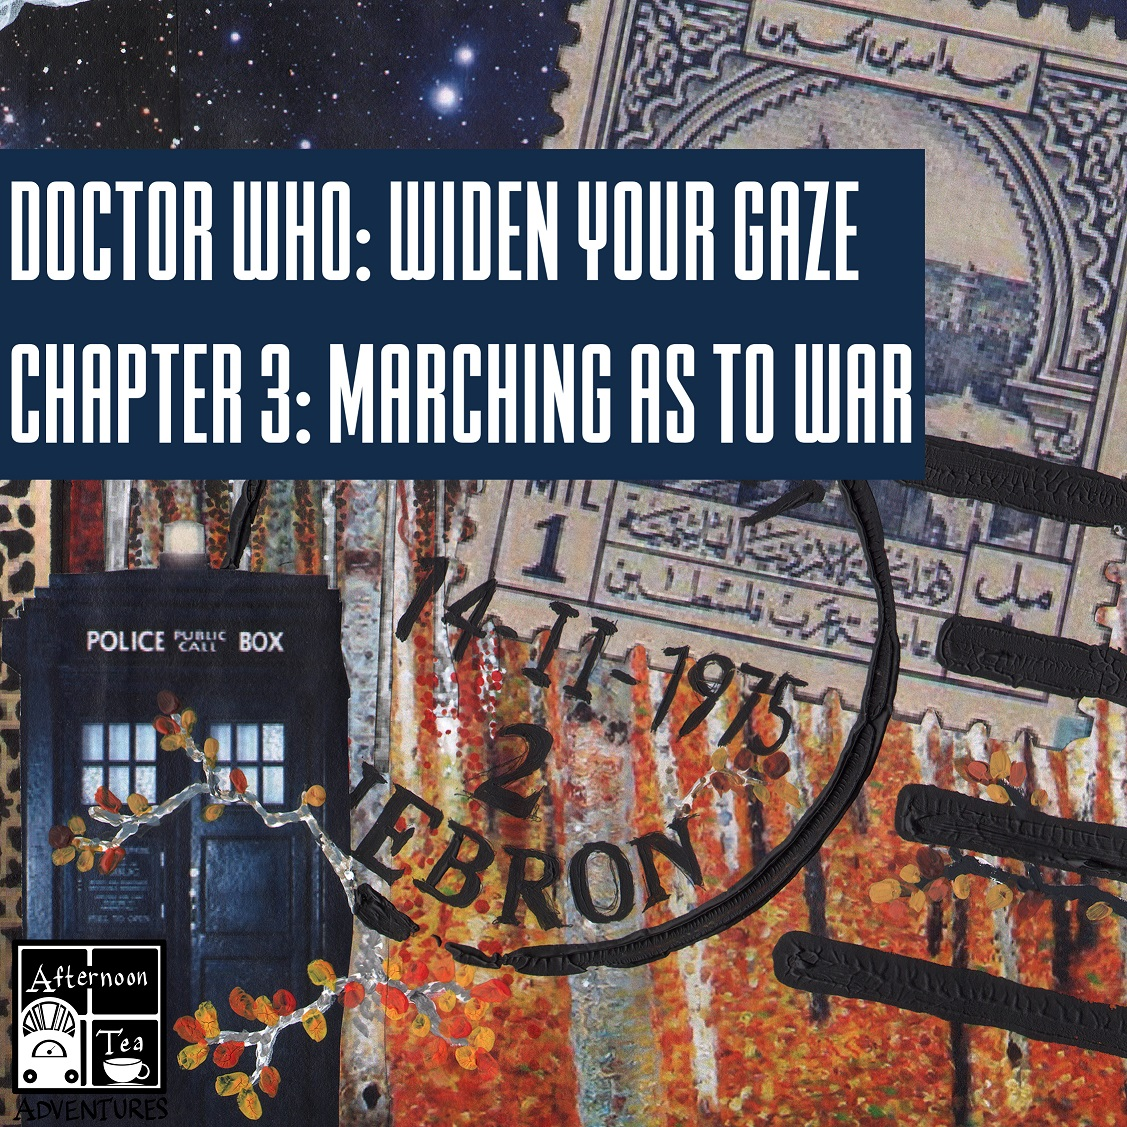 Doctor Who Series 1 Story 1: Widen Your Gaze: Chapter 3 - Marching As To War